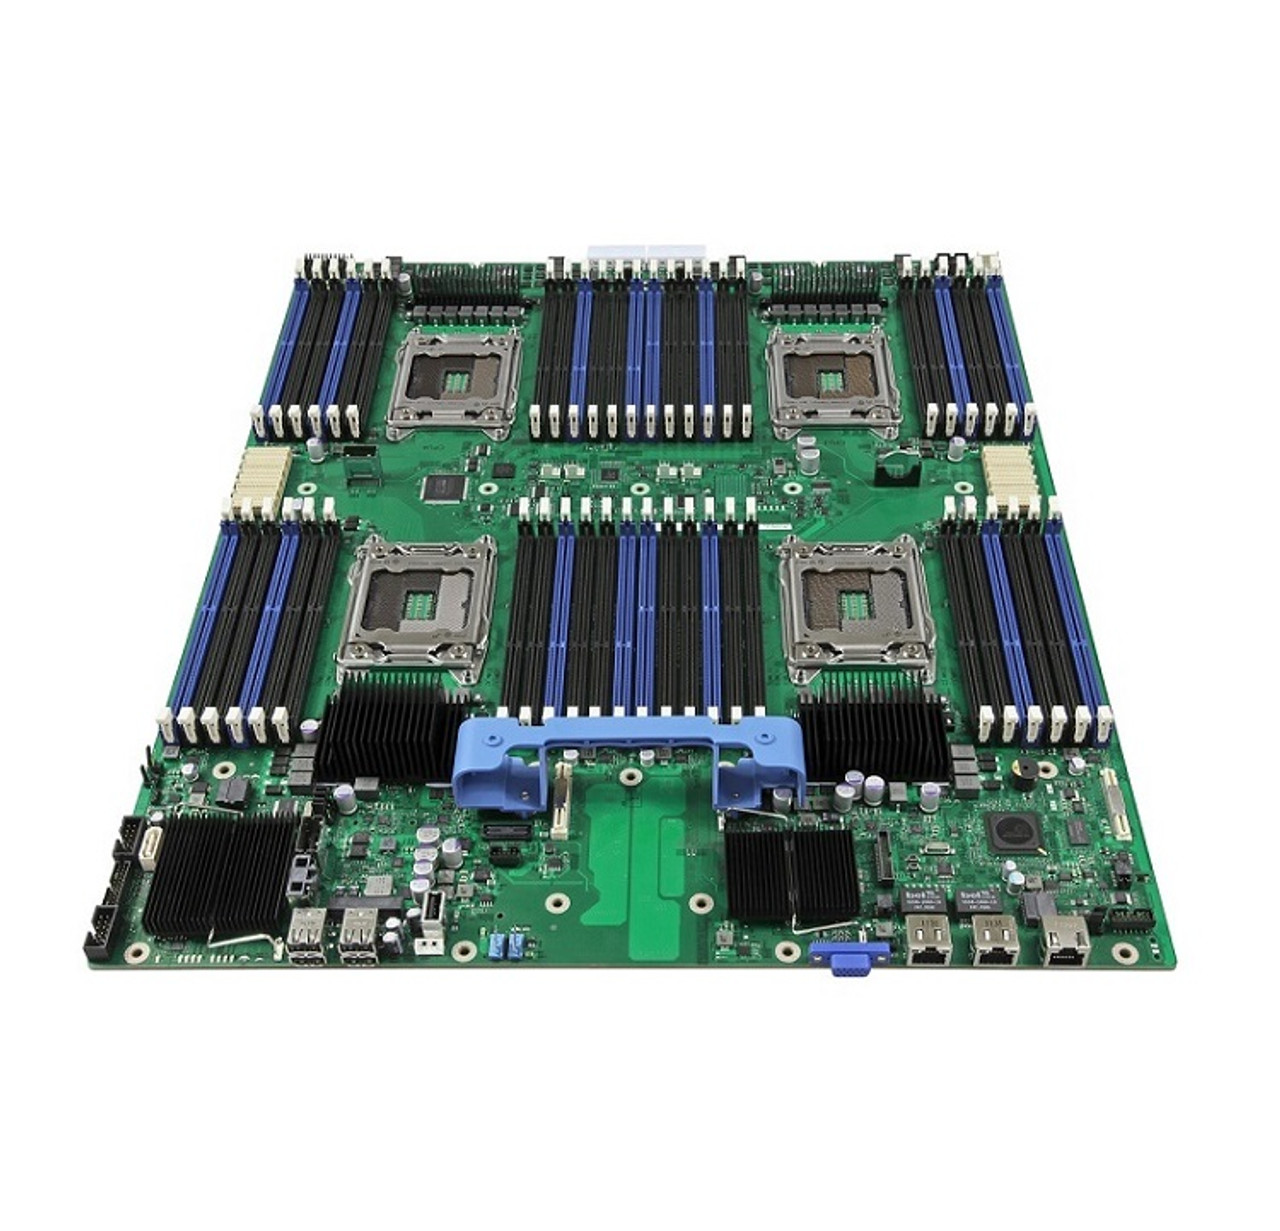 Part No: 086HF8 - Dell System Board (Motherboard) for PowerEdge R610  (Refurbished)